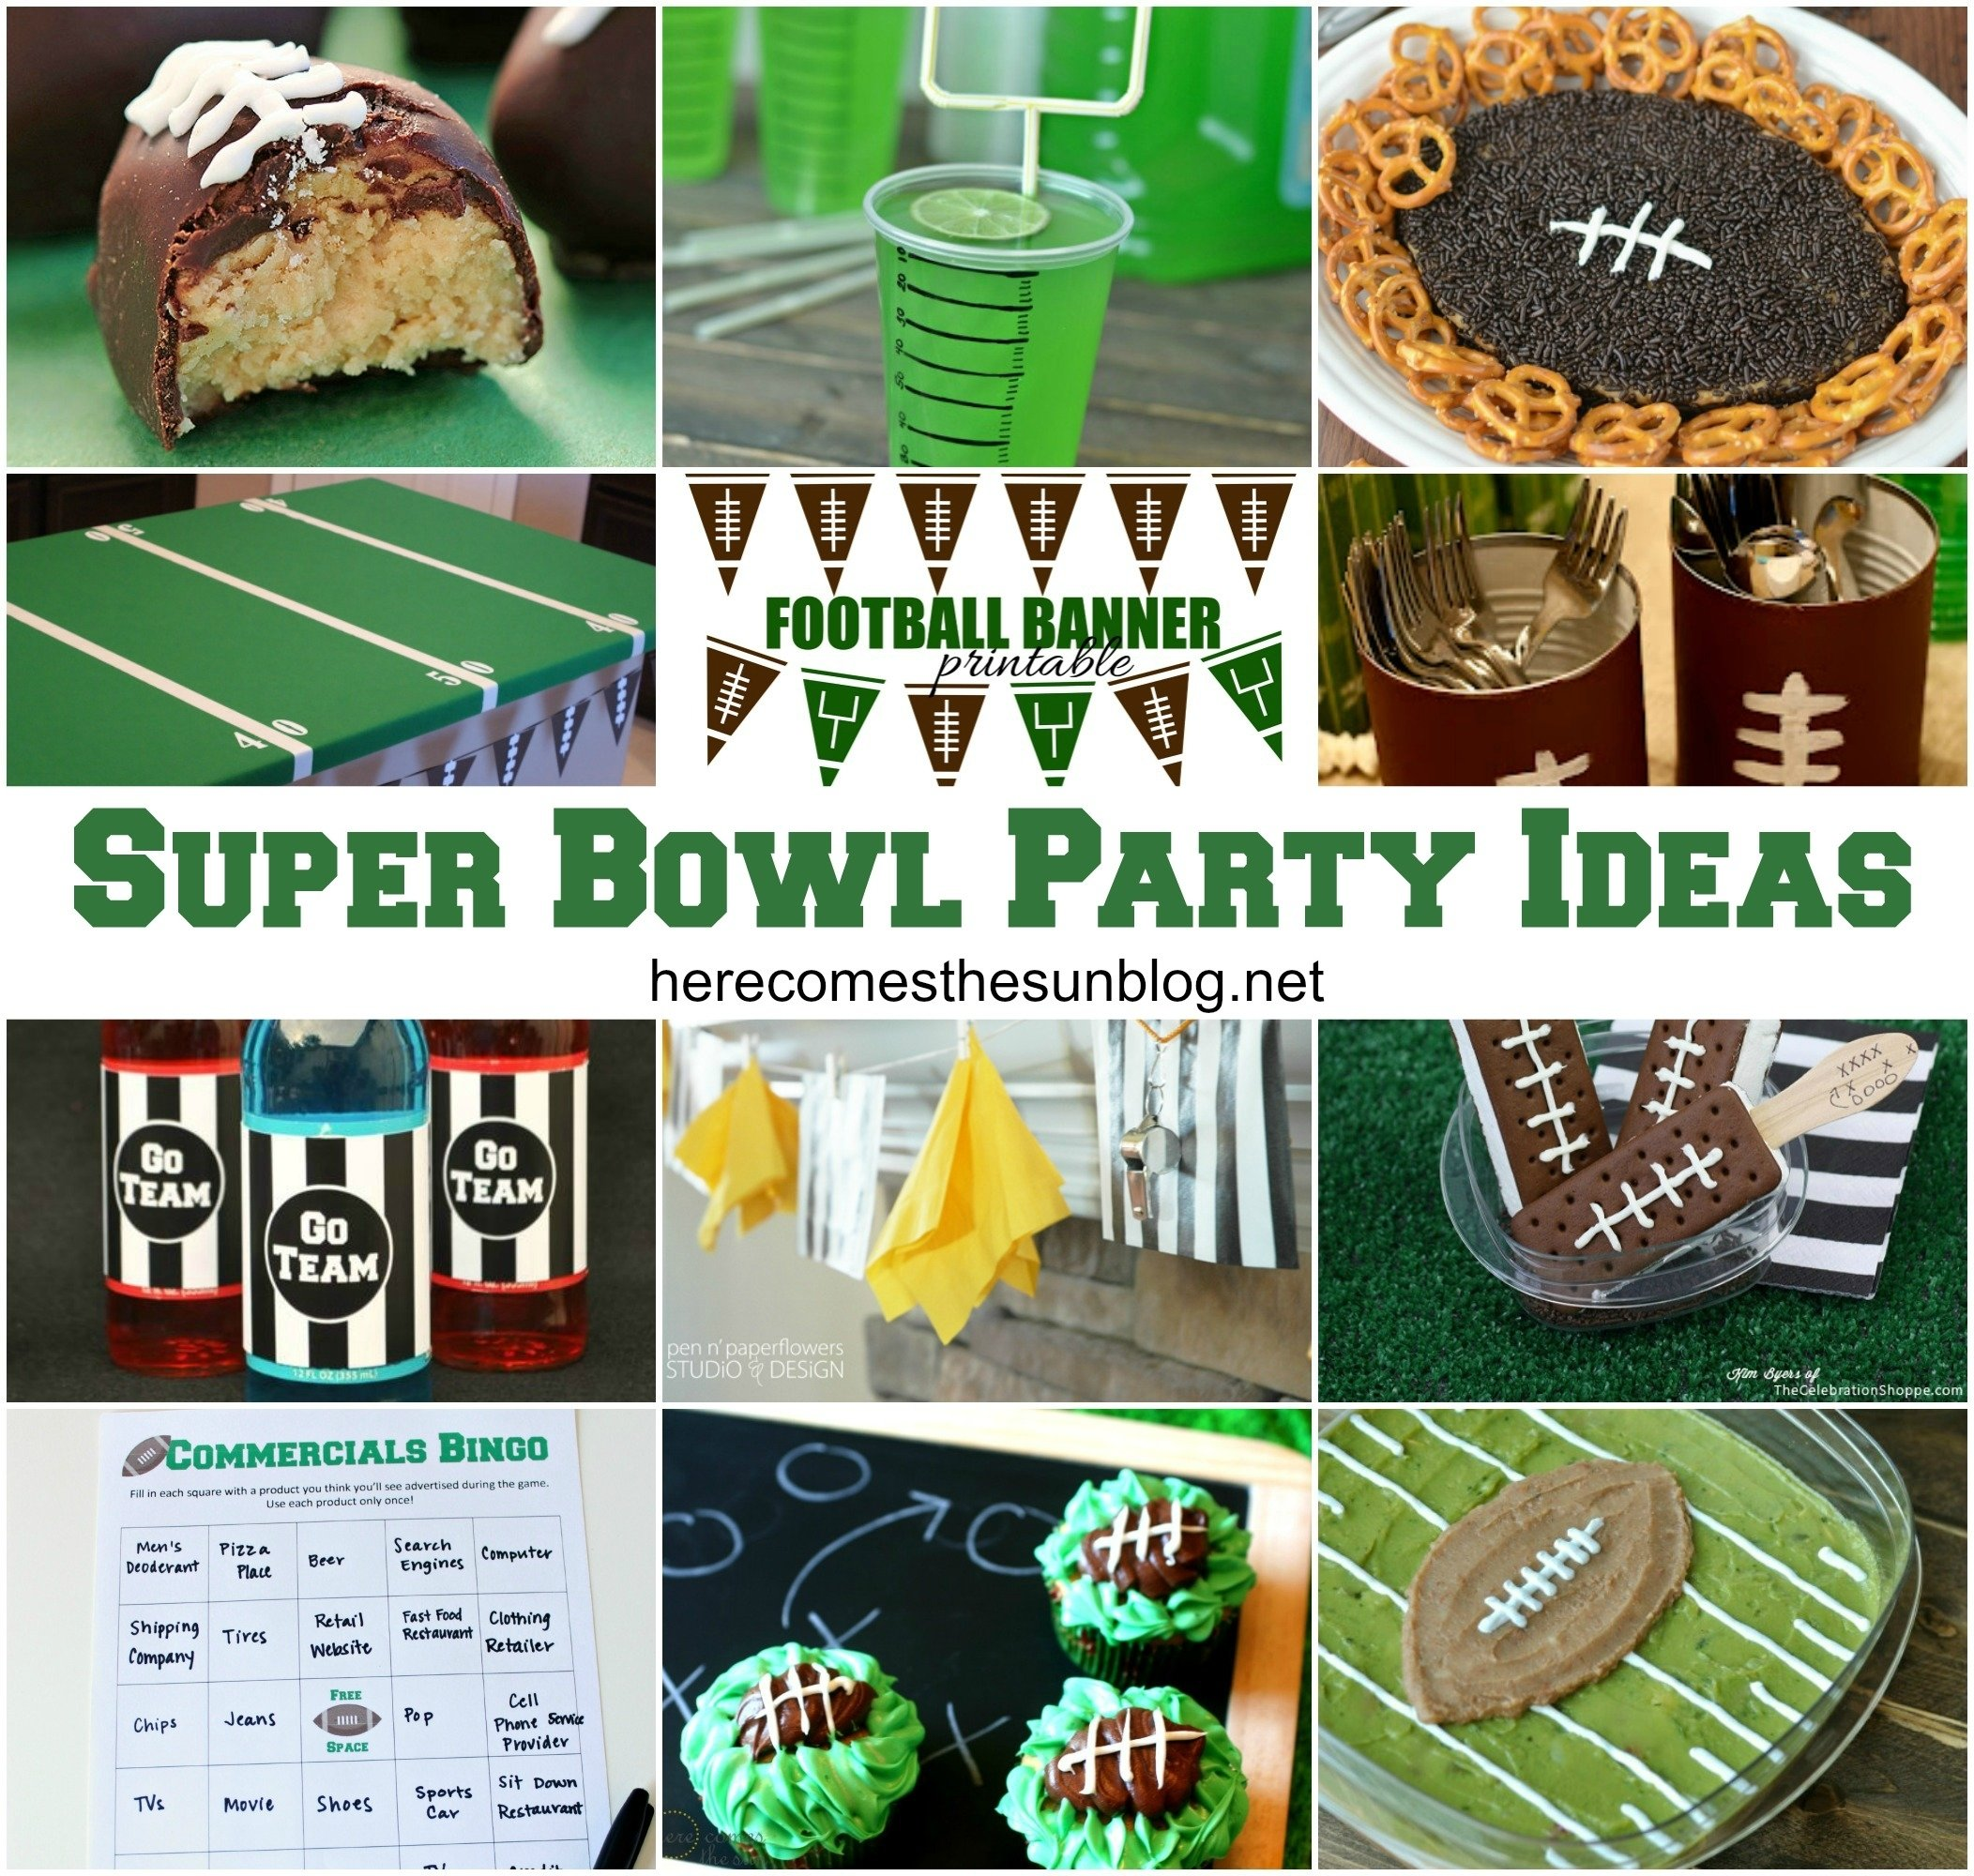 super bowl party ideas | here comes the sun